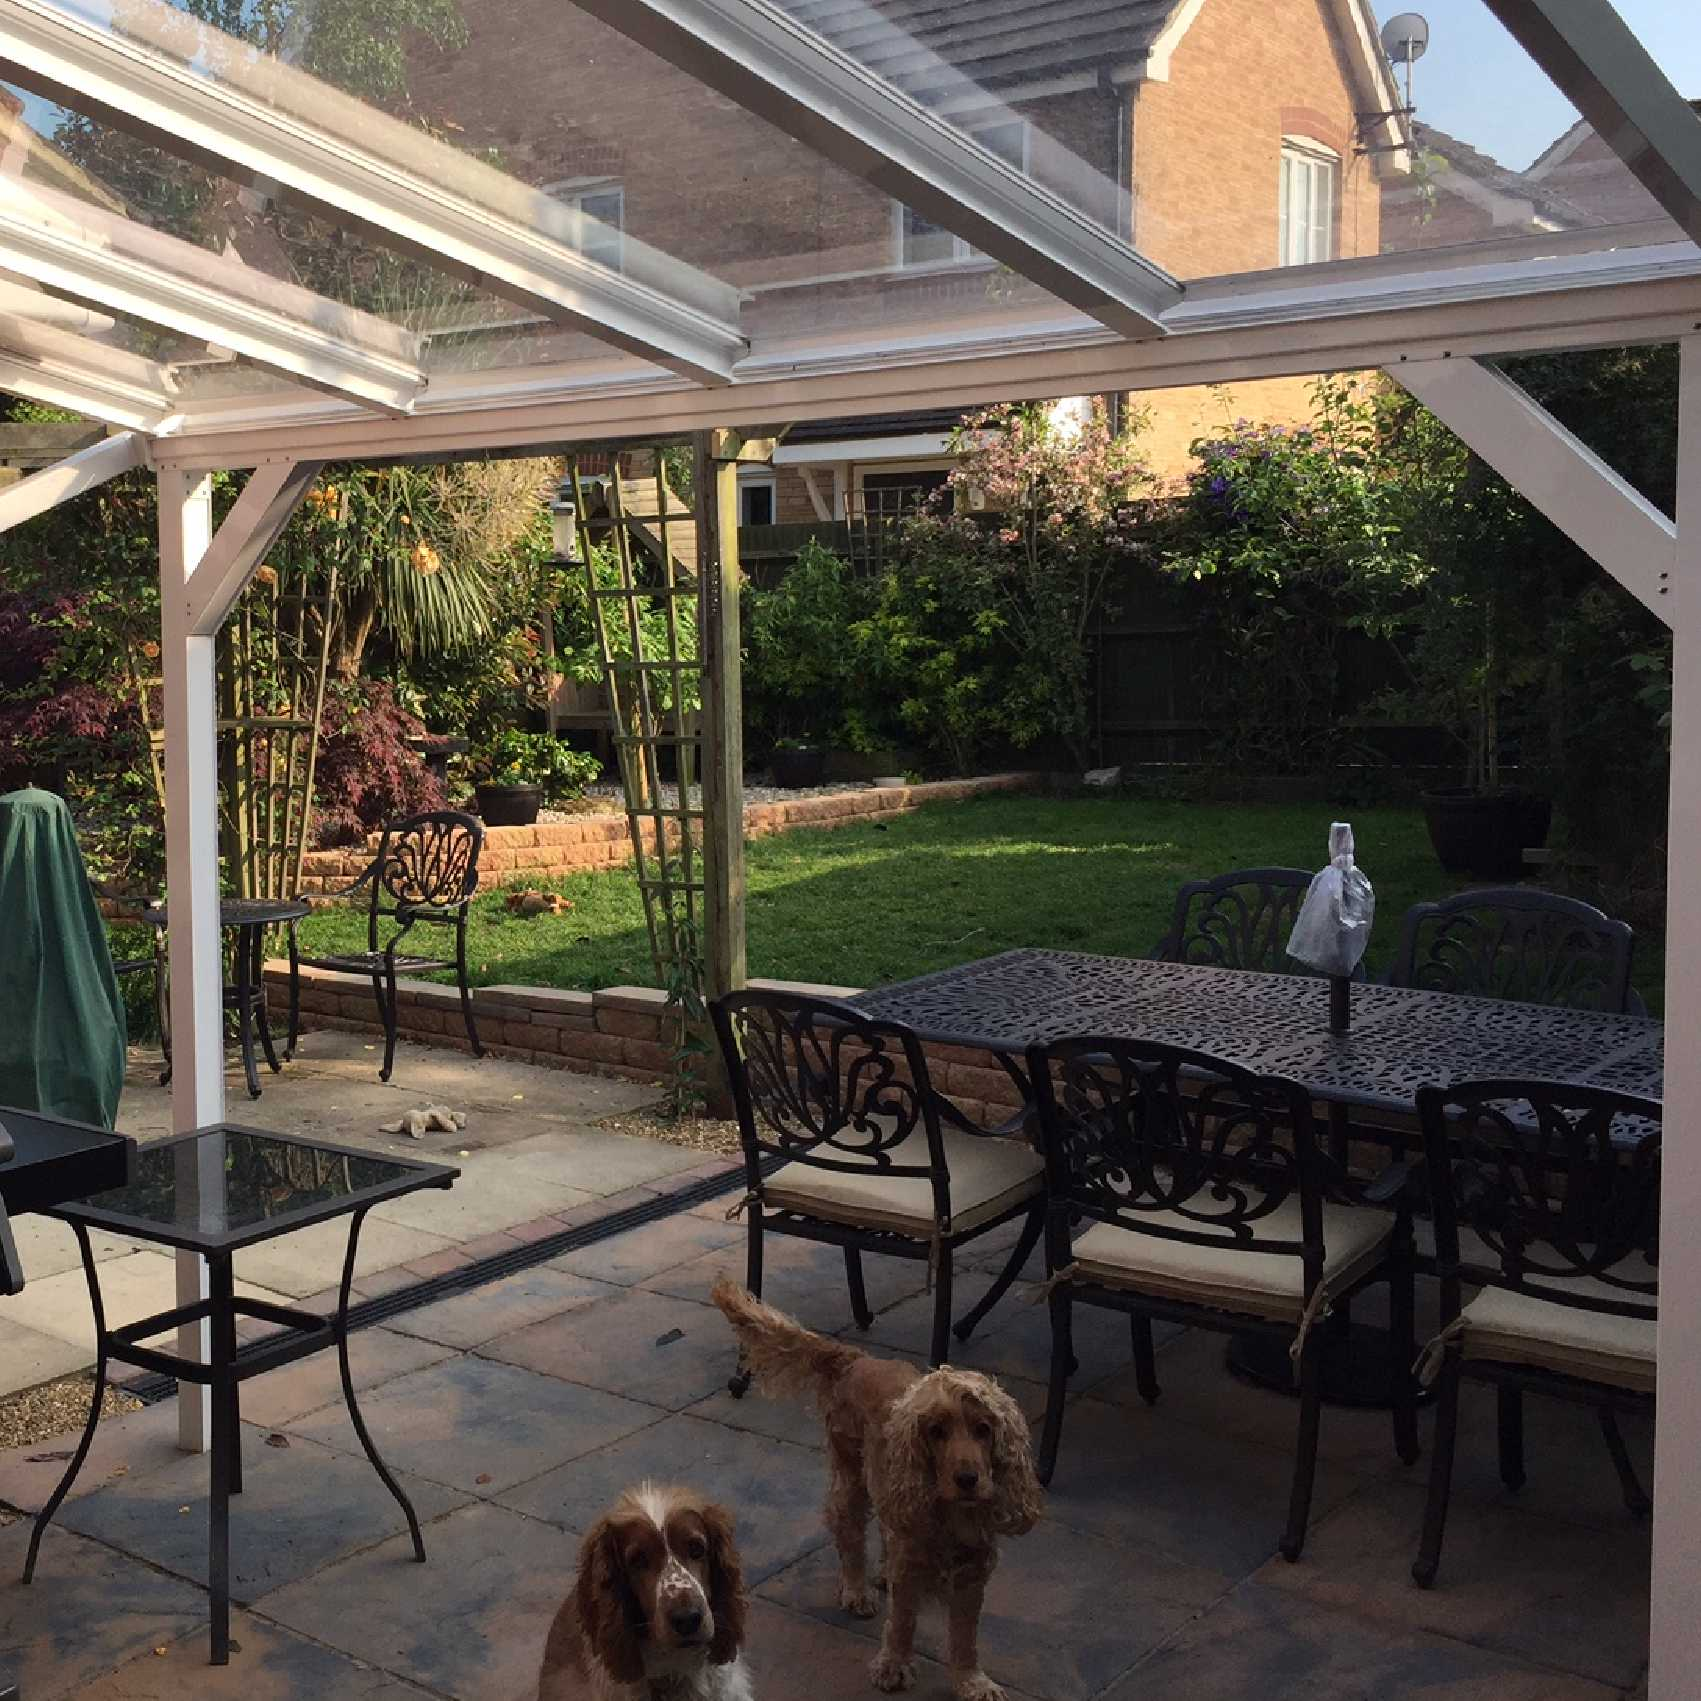 Affordable Omega Smart White Lean-To Canopy with 6mm Glass Clear Plate Polycarbonate Glazing - 4.9m (W) x 3.5m (P), (3) Supporting Posts